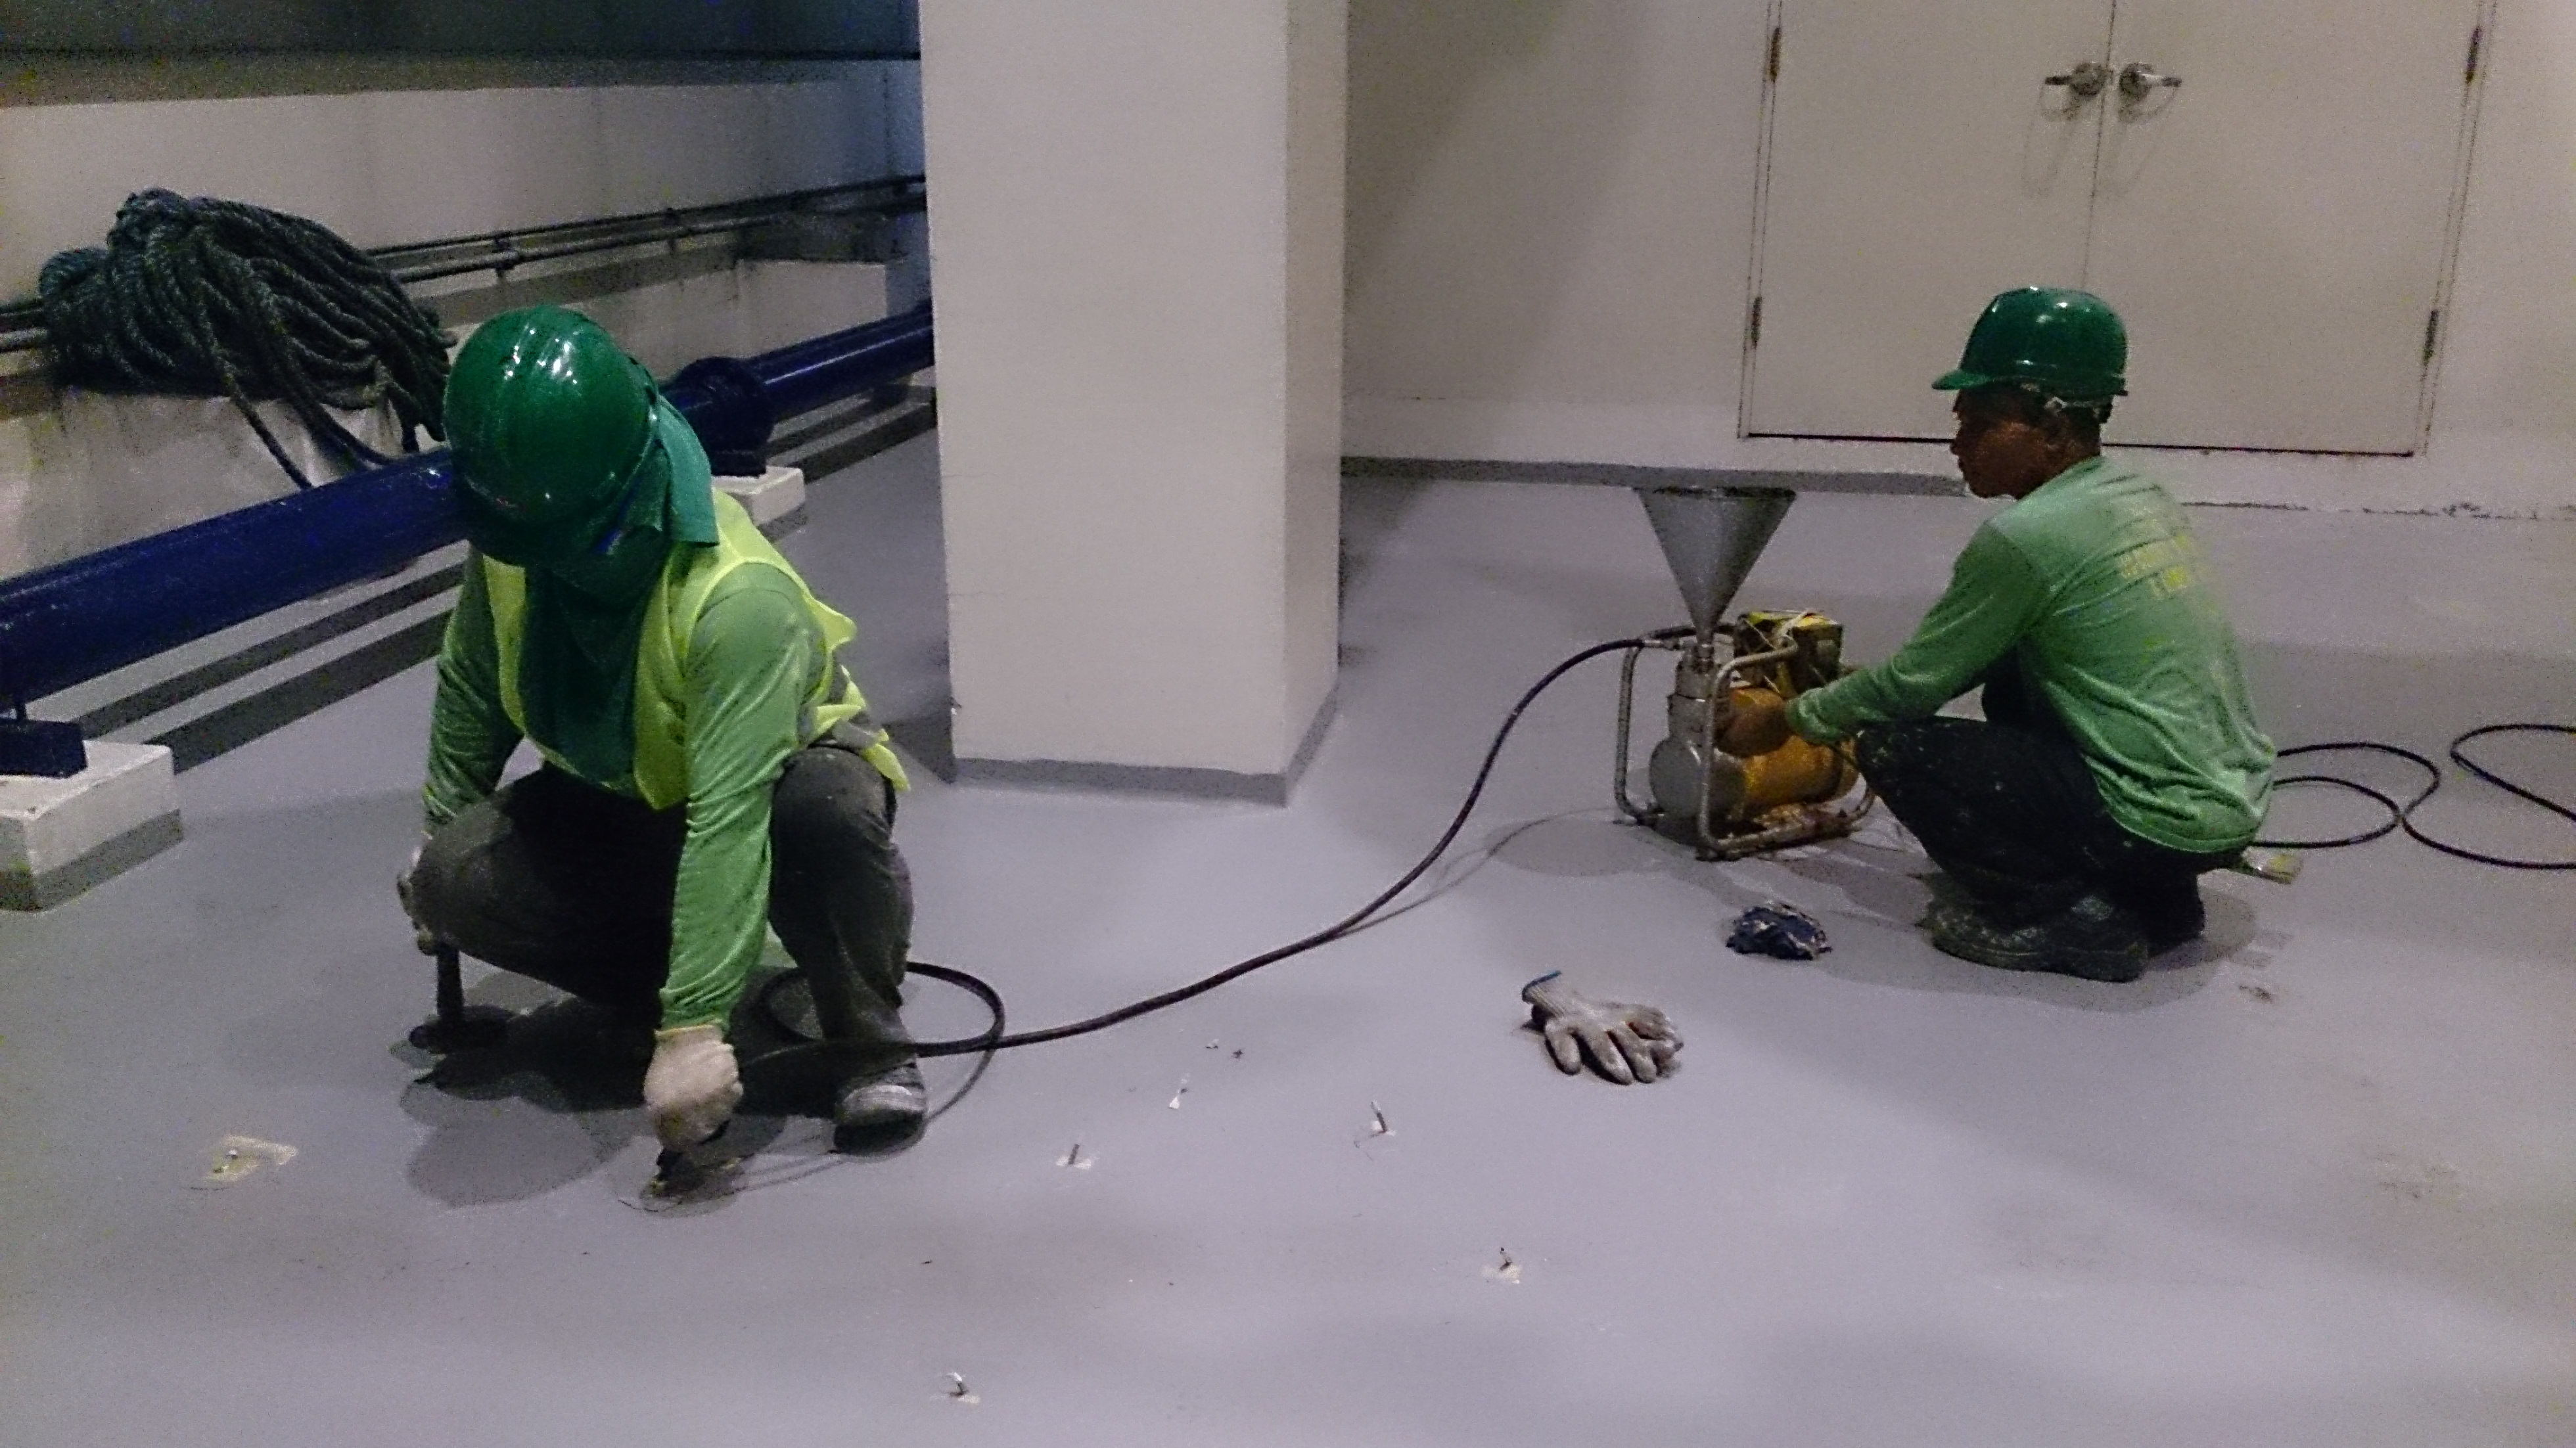 Epoxy Injection Services Eec Coating Waterproofing And General Services Inc